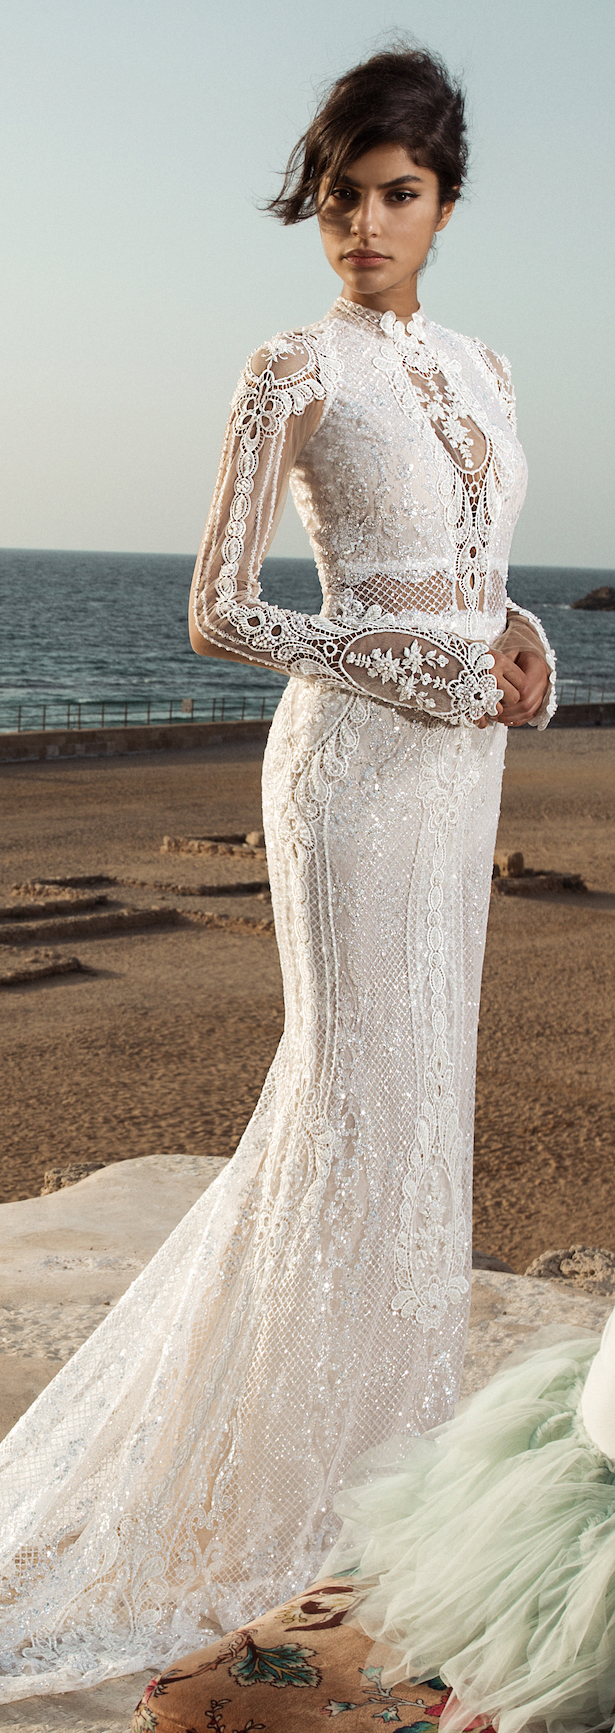 Iii By Galia Lahav Wedding Dress Gala Collection No